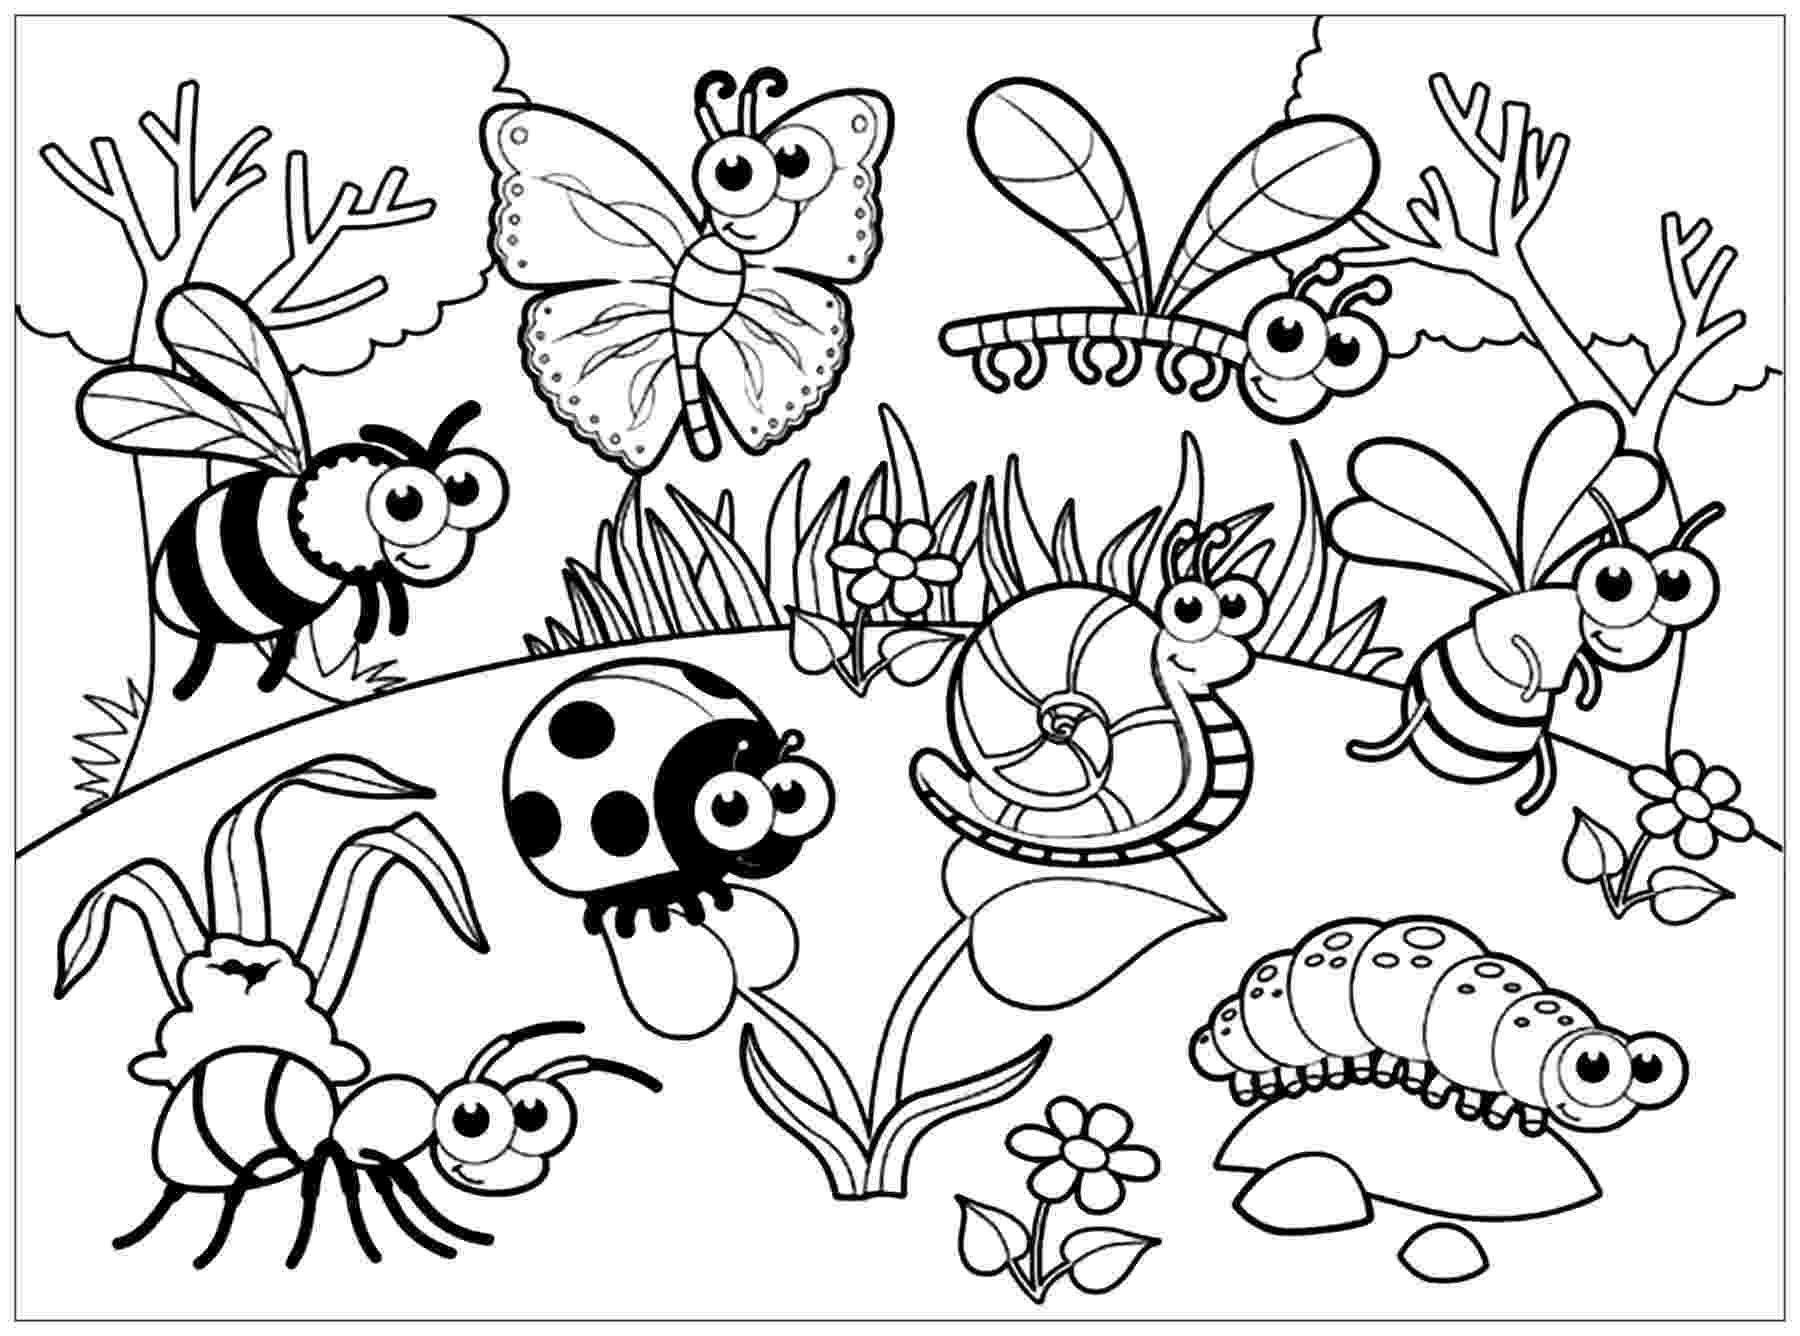 bugs colouring pages insects to print insects kids coloring pages colouring bugs pages